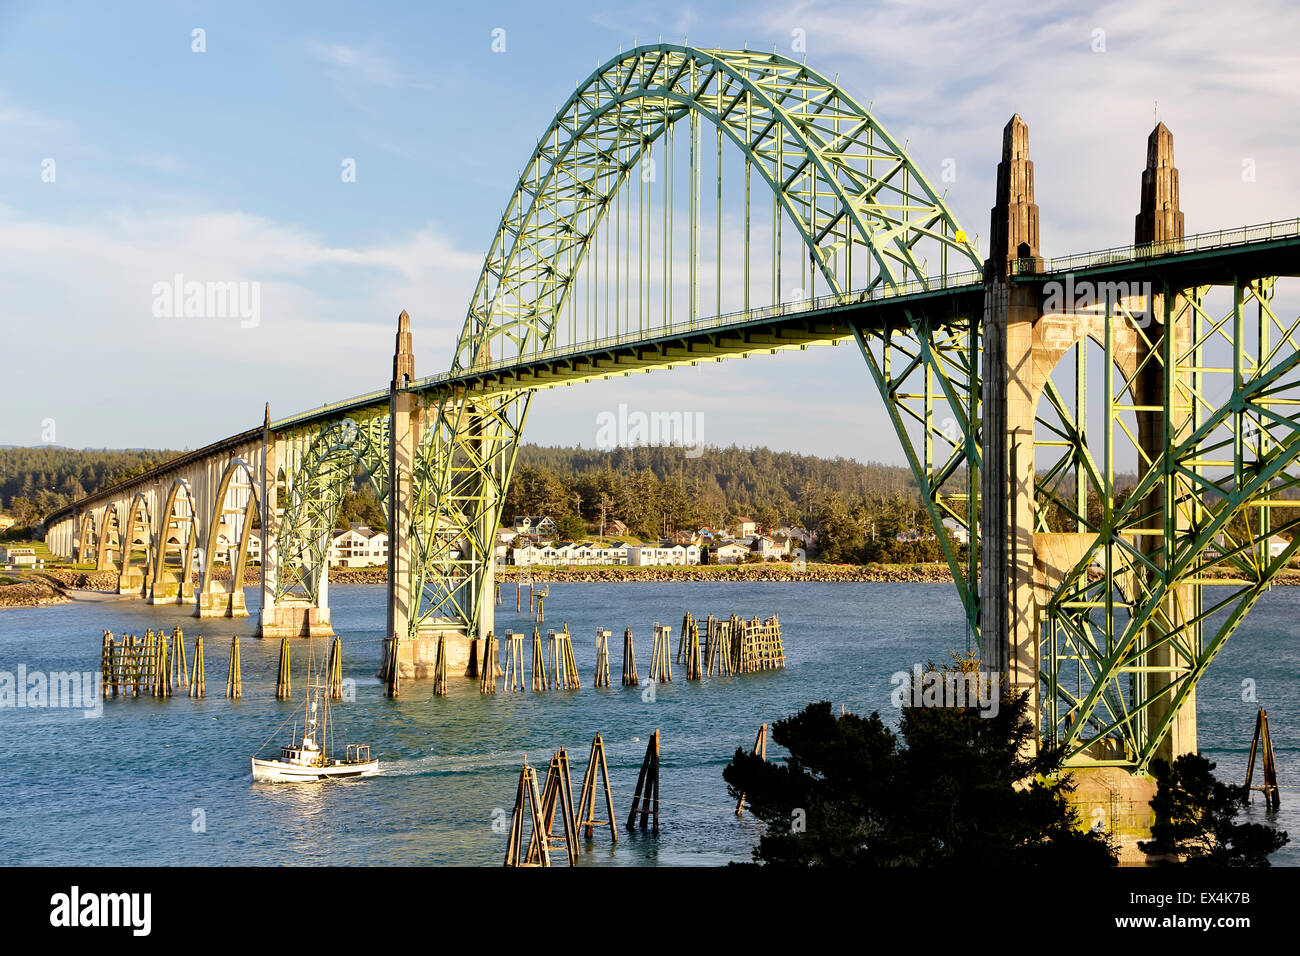 Yaquina bay bridge et bateau de pêche, Newport, Oregon USA Photo Stock